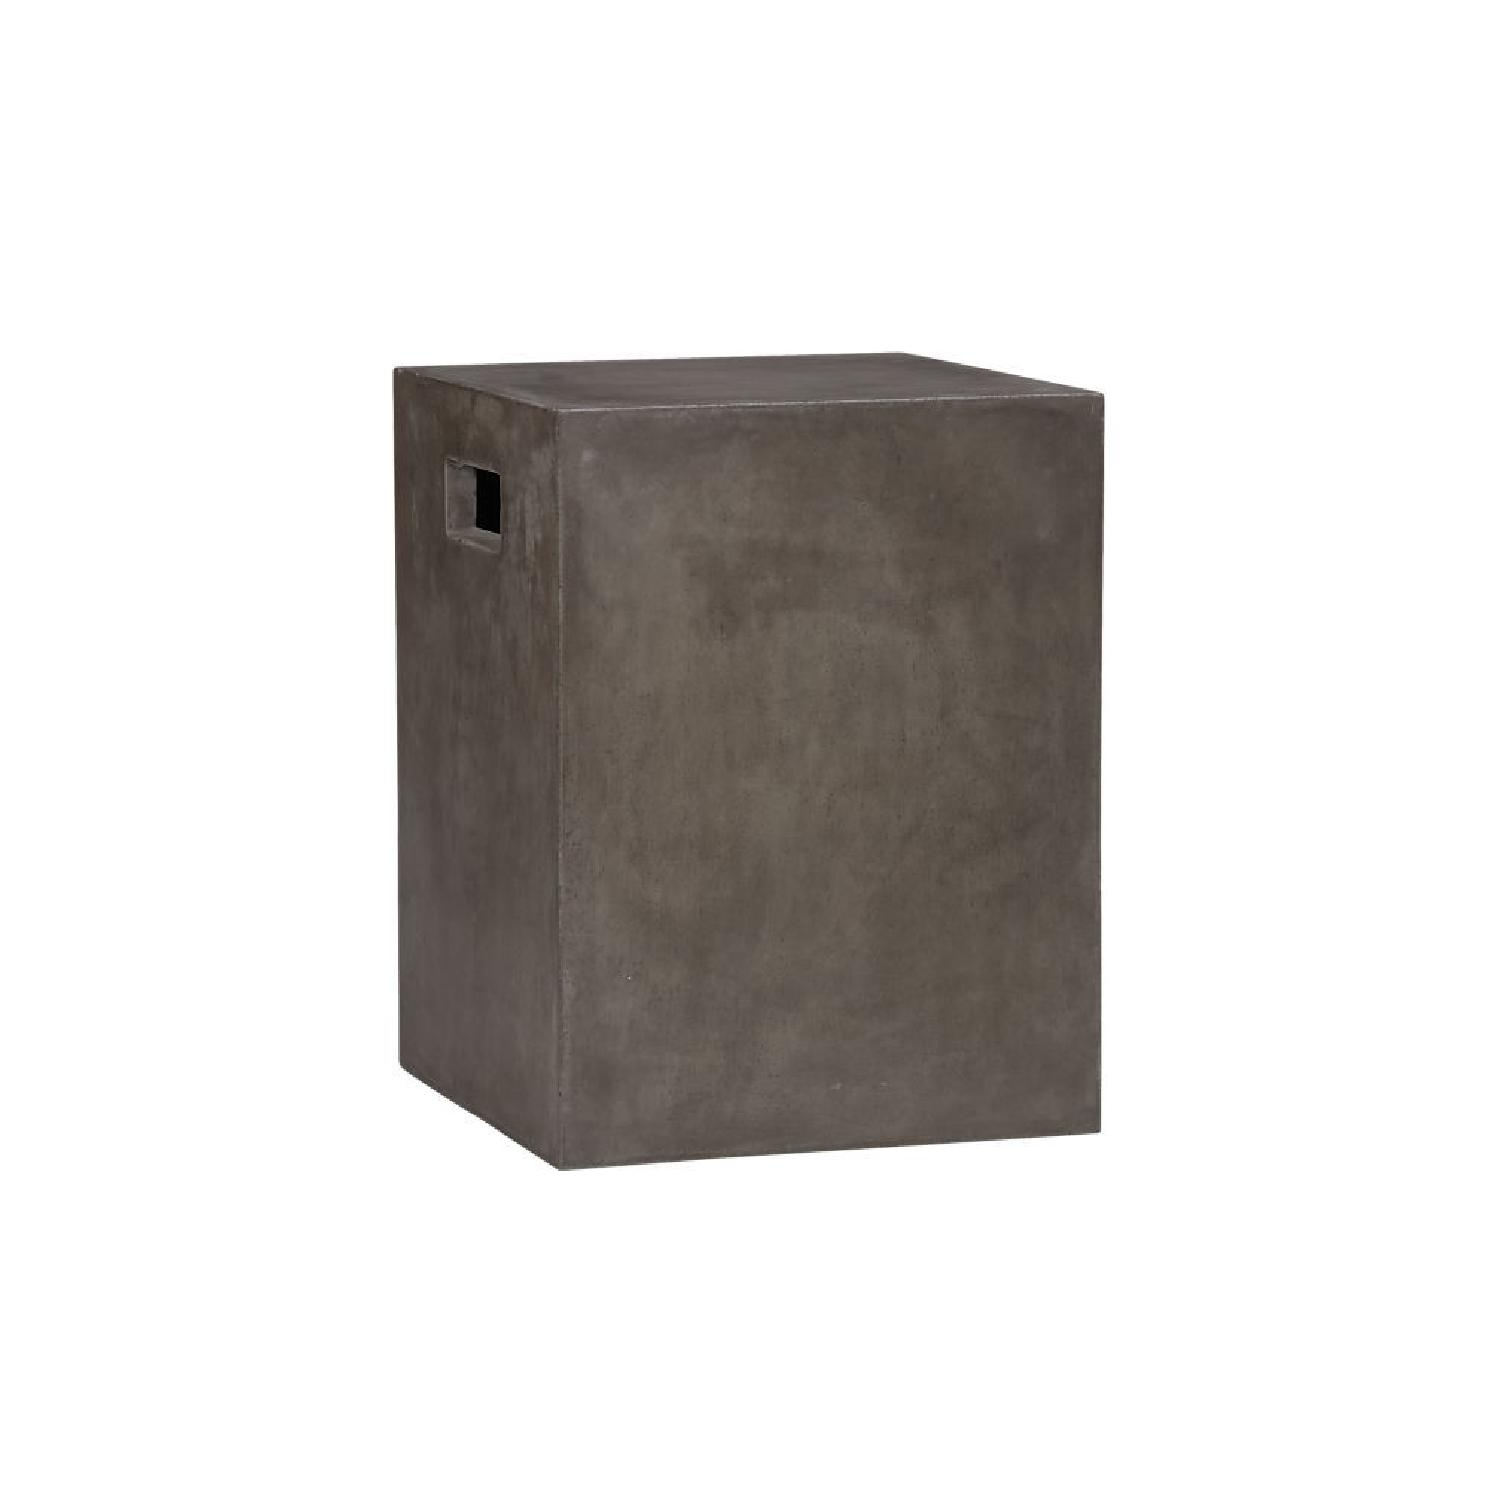 CB2 Cement Grey Side Tables